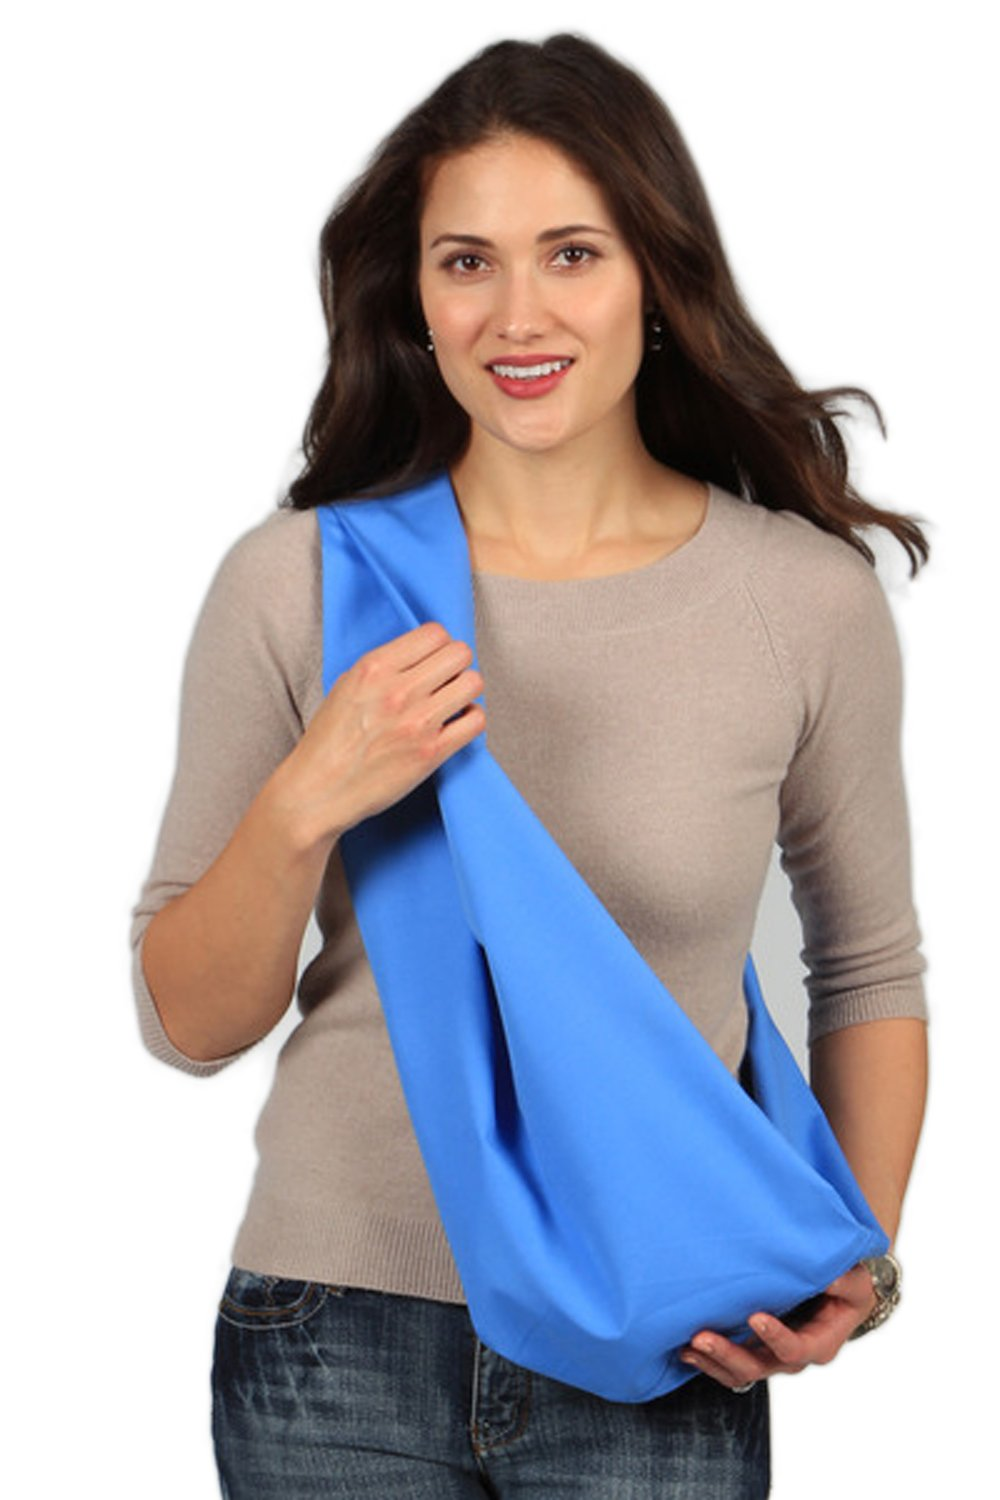 Stone Infants and Toddlers Upto 3 Years HugaMonkey Cotton Baby Sling Wrap Carrier for Newborn Babies Medium